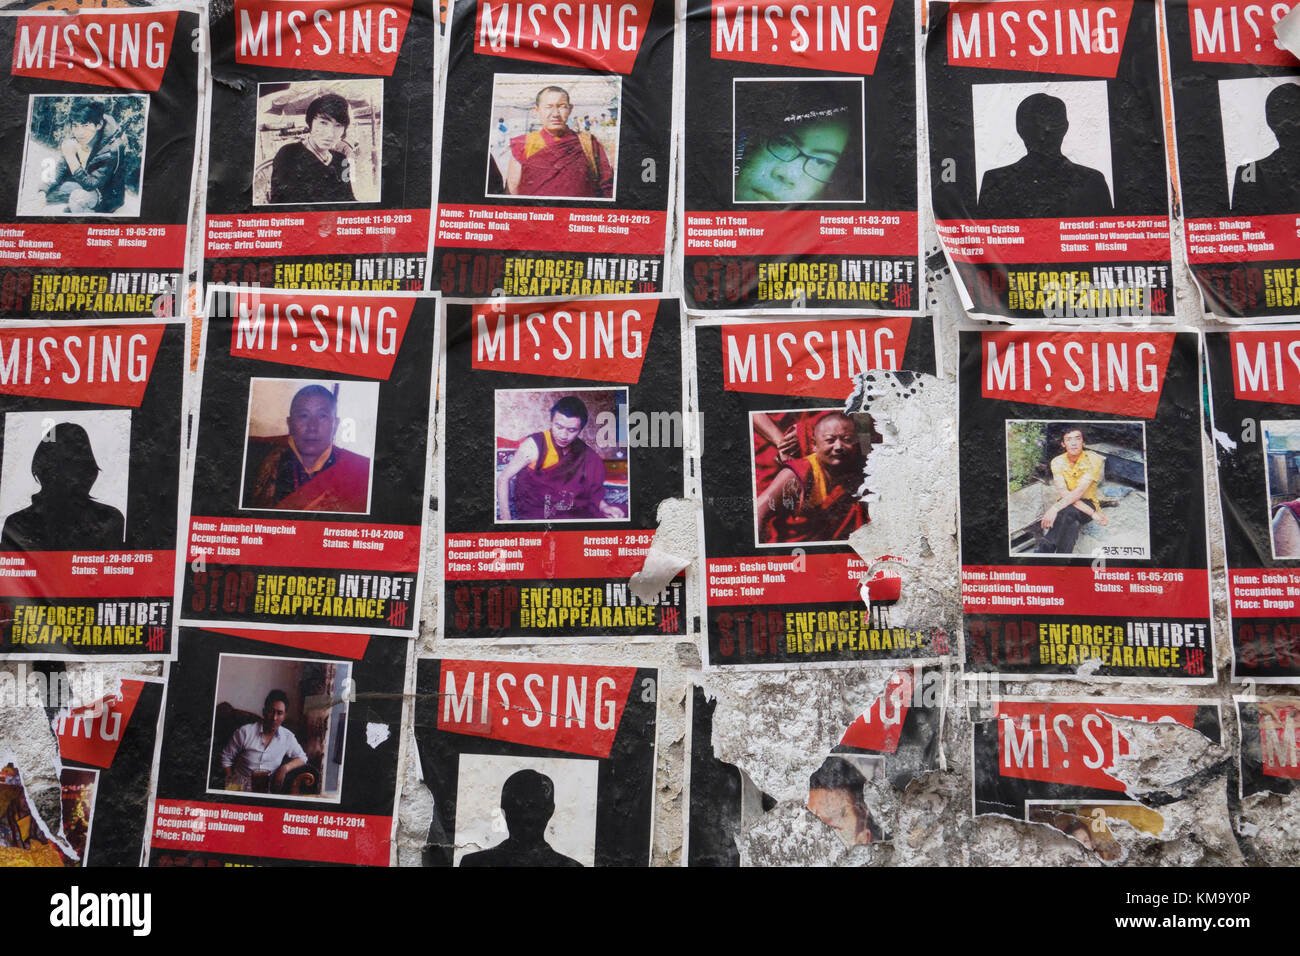 Posters on public wall giving information on Tibetans missing in their own country, presumably at the hands of China's - Stock Image